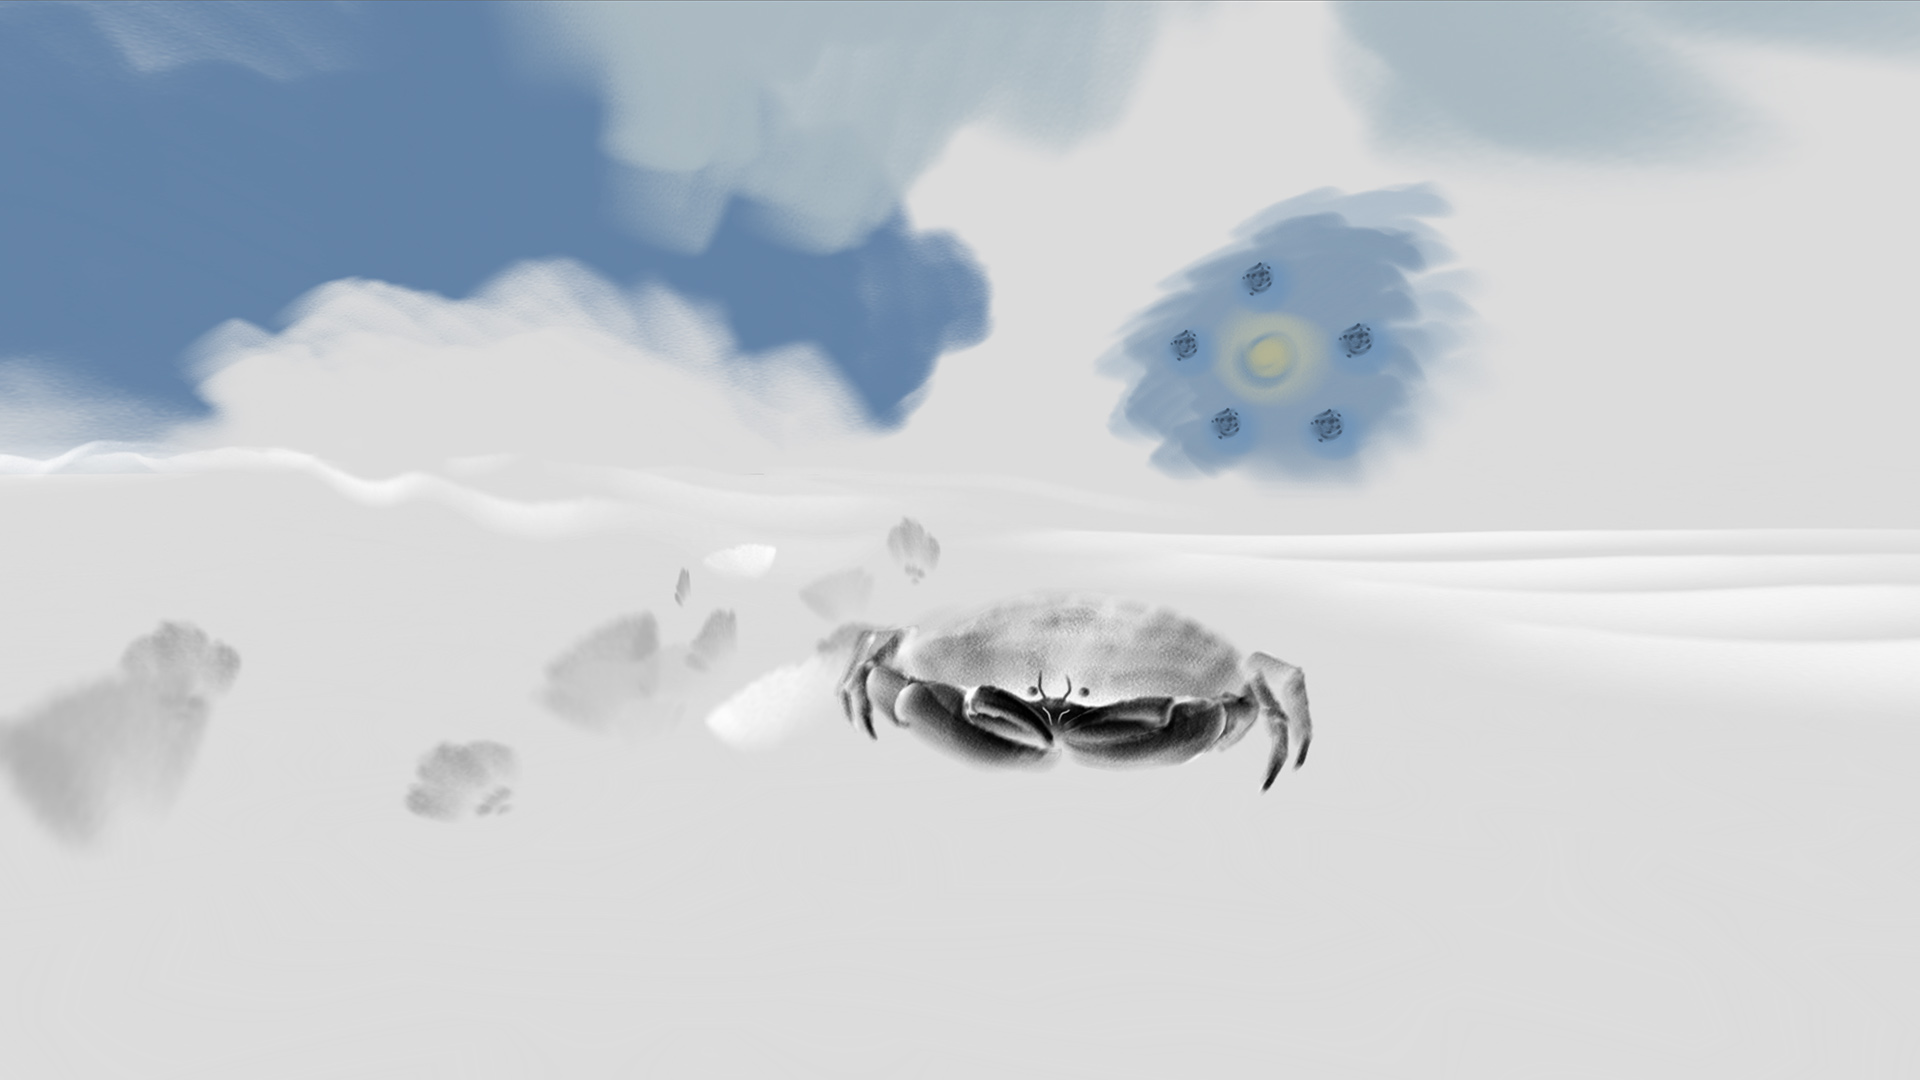 Mirages-of-Winter_Crab_Screenshot-1080p.jpg